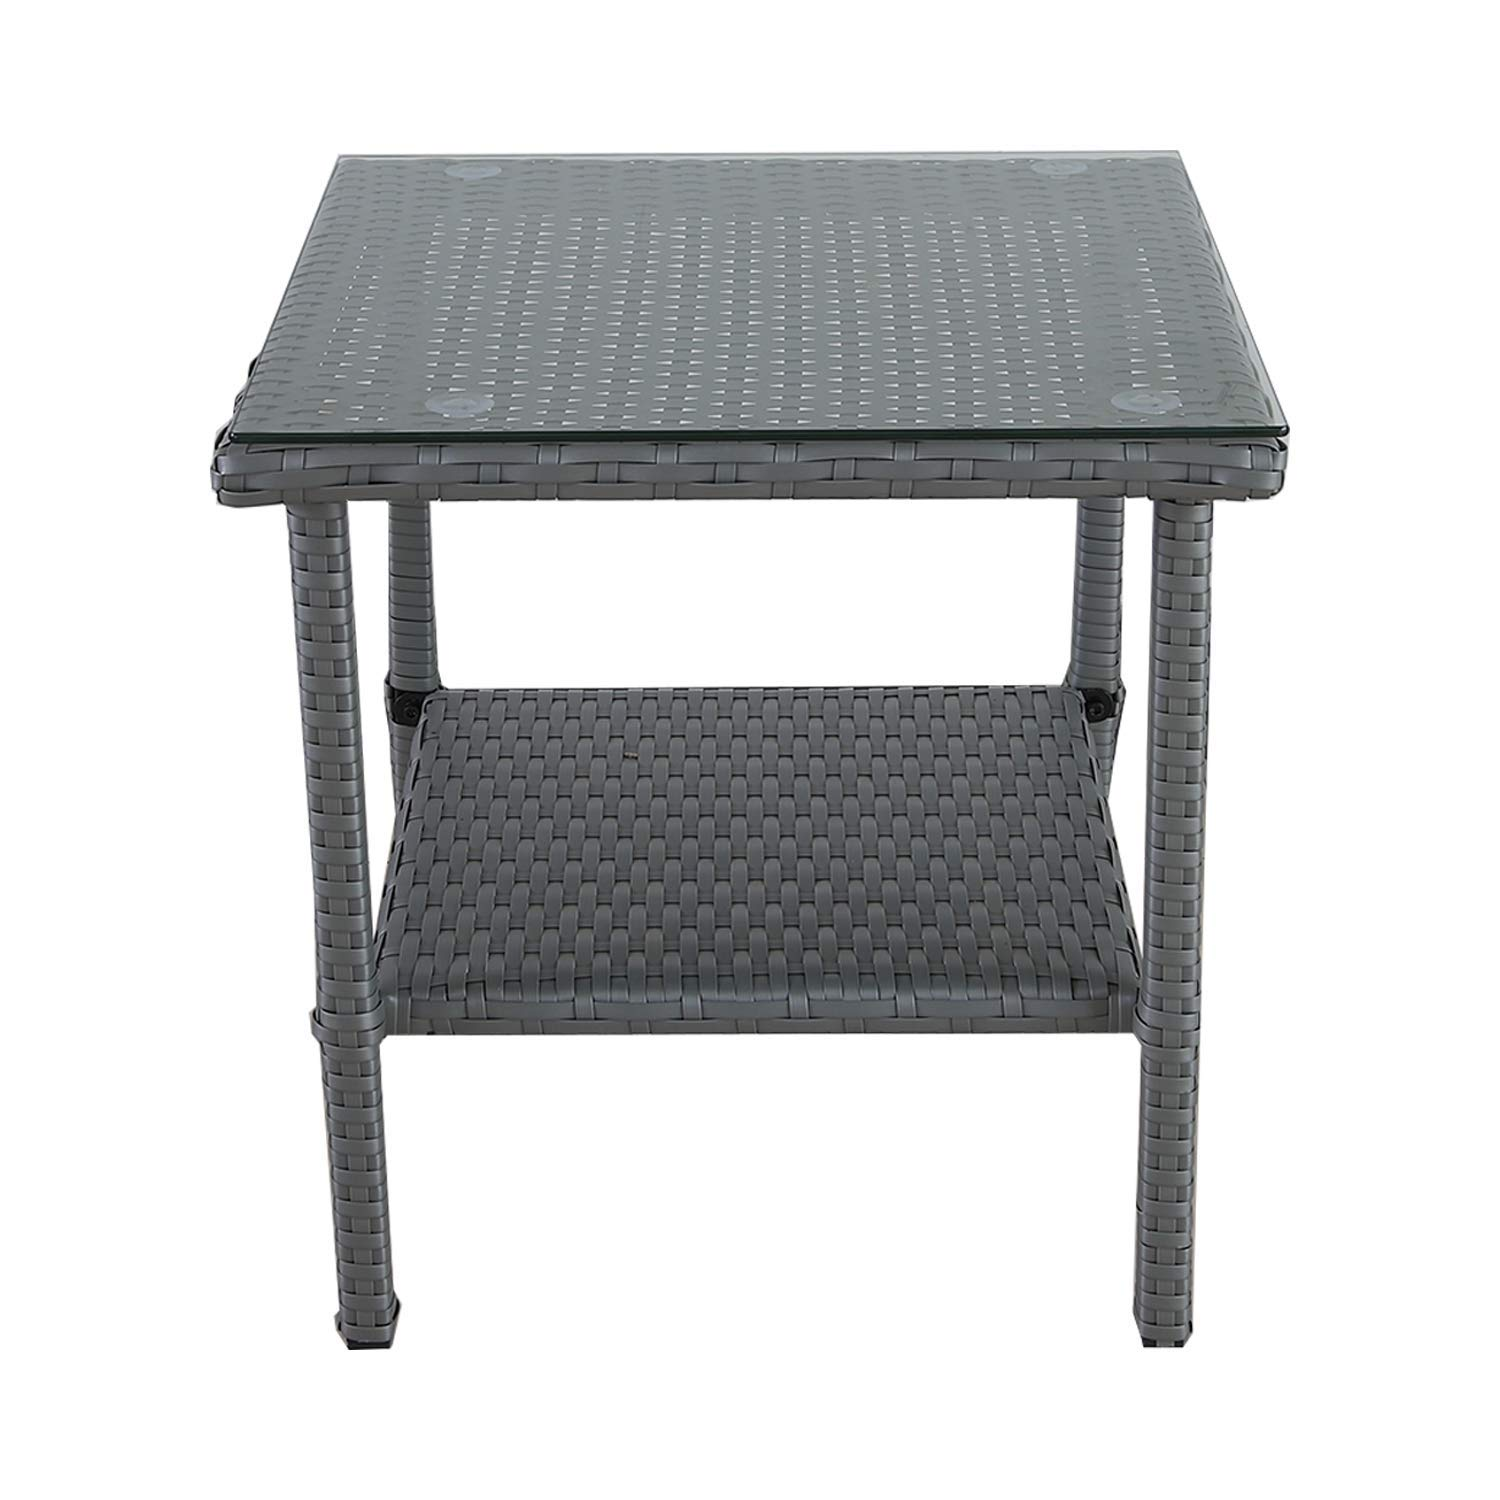 Outdoor PE Wicker Glass Top Side Table - Patio Rattan Square End Table with Storage, Grey by VALITA